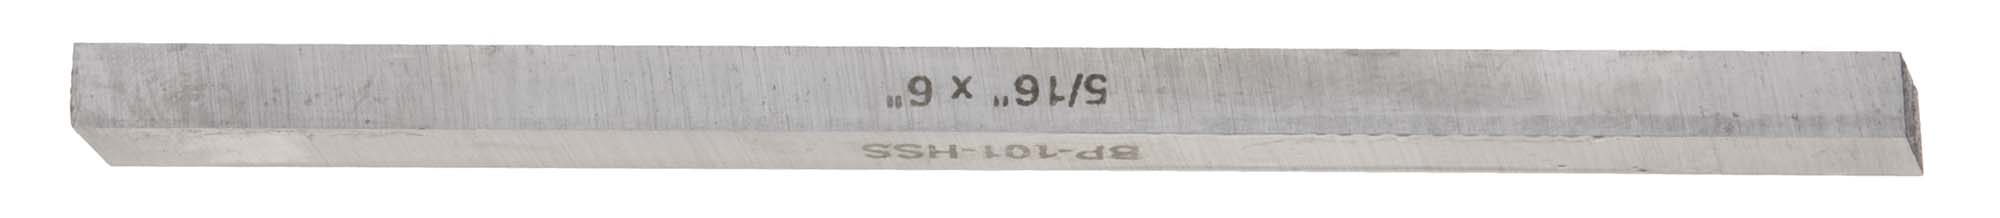 "1/4"" Square X 6"" Long High Speed Steel M2 Tool Bit"